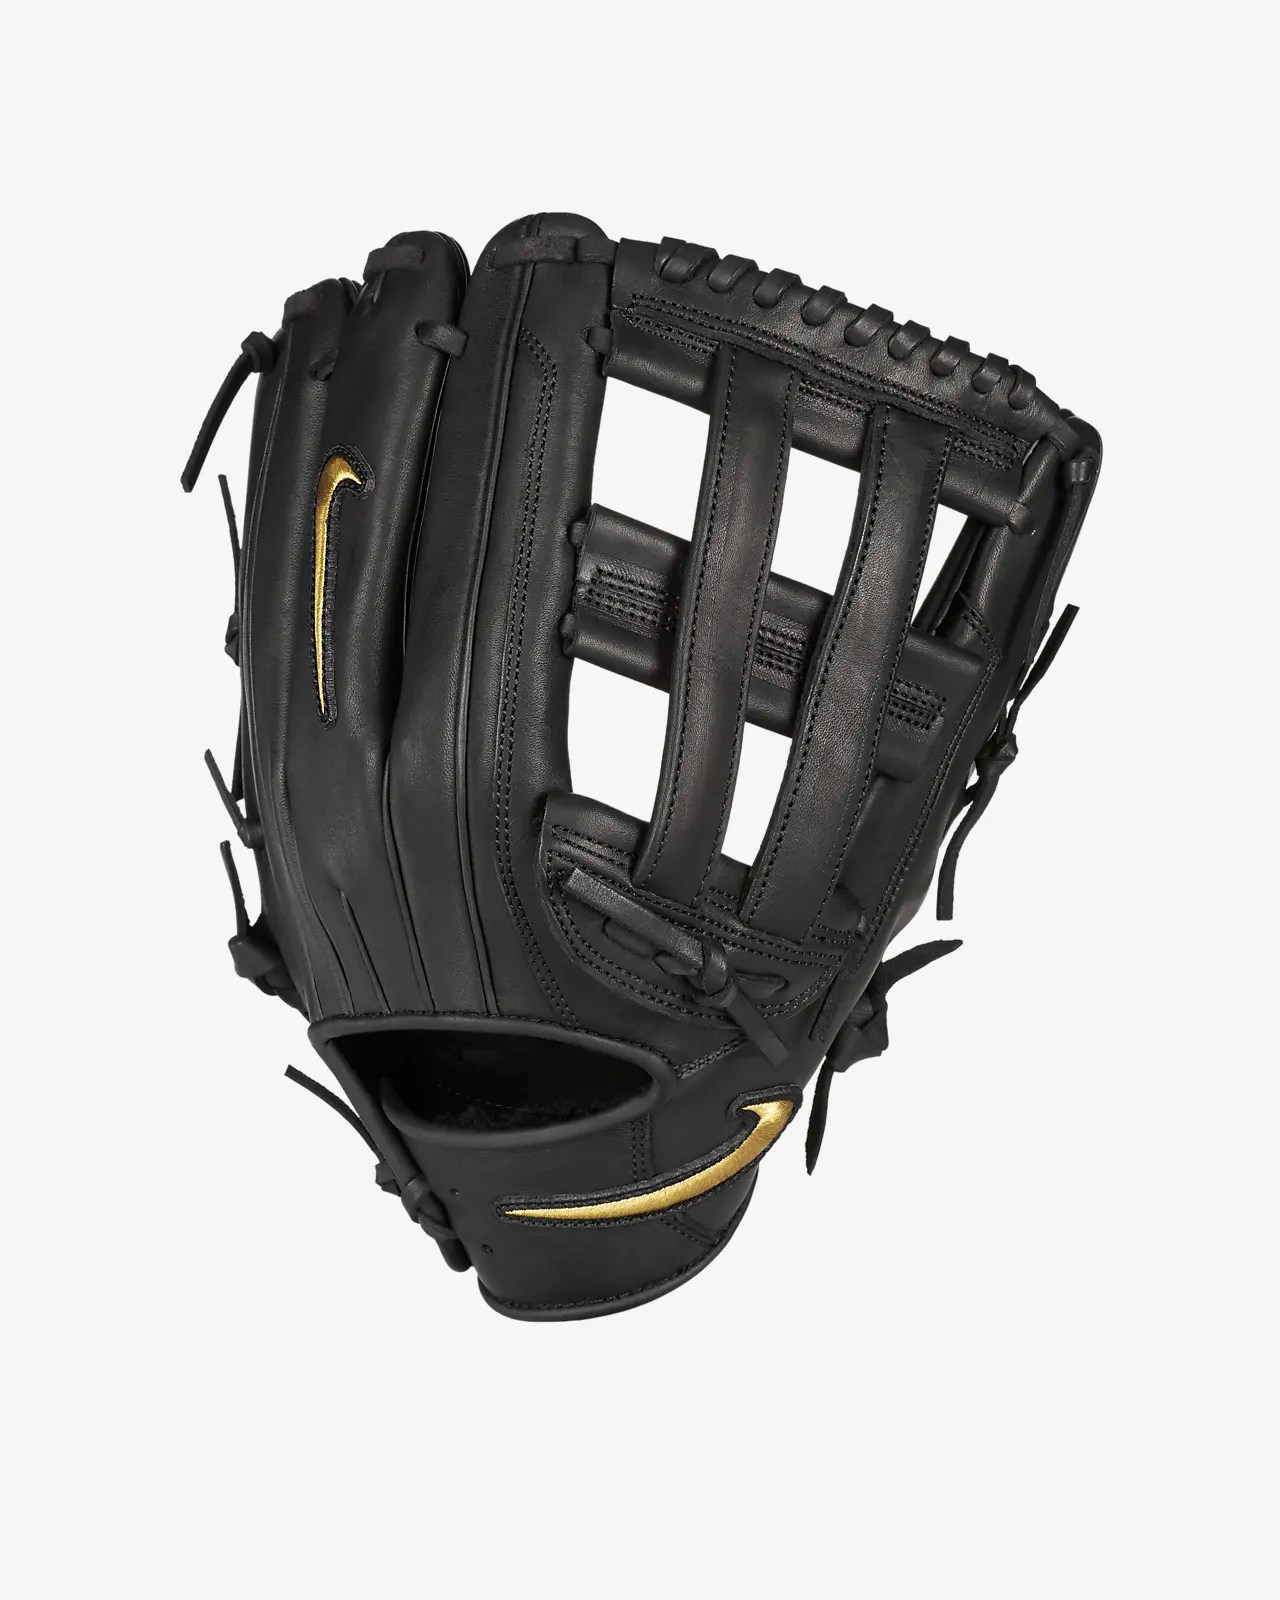 The Best Softball Gloves for Your Game | JustBallGloves